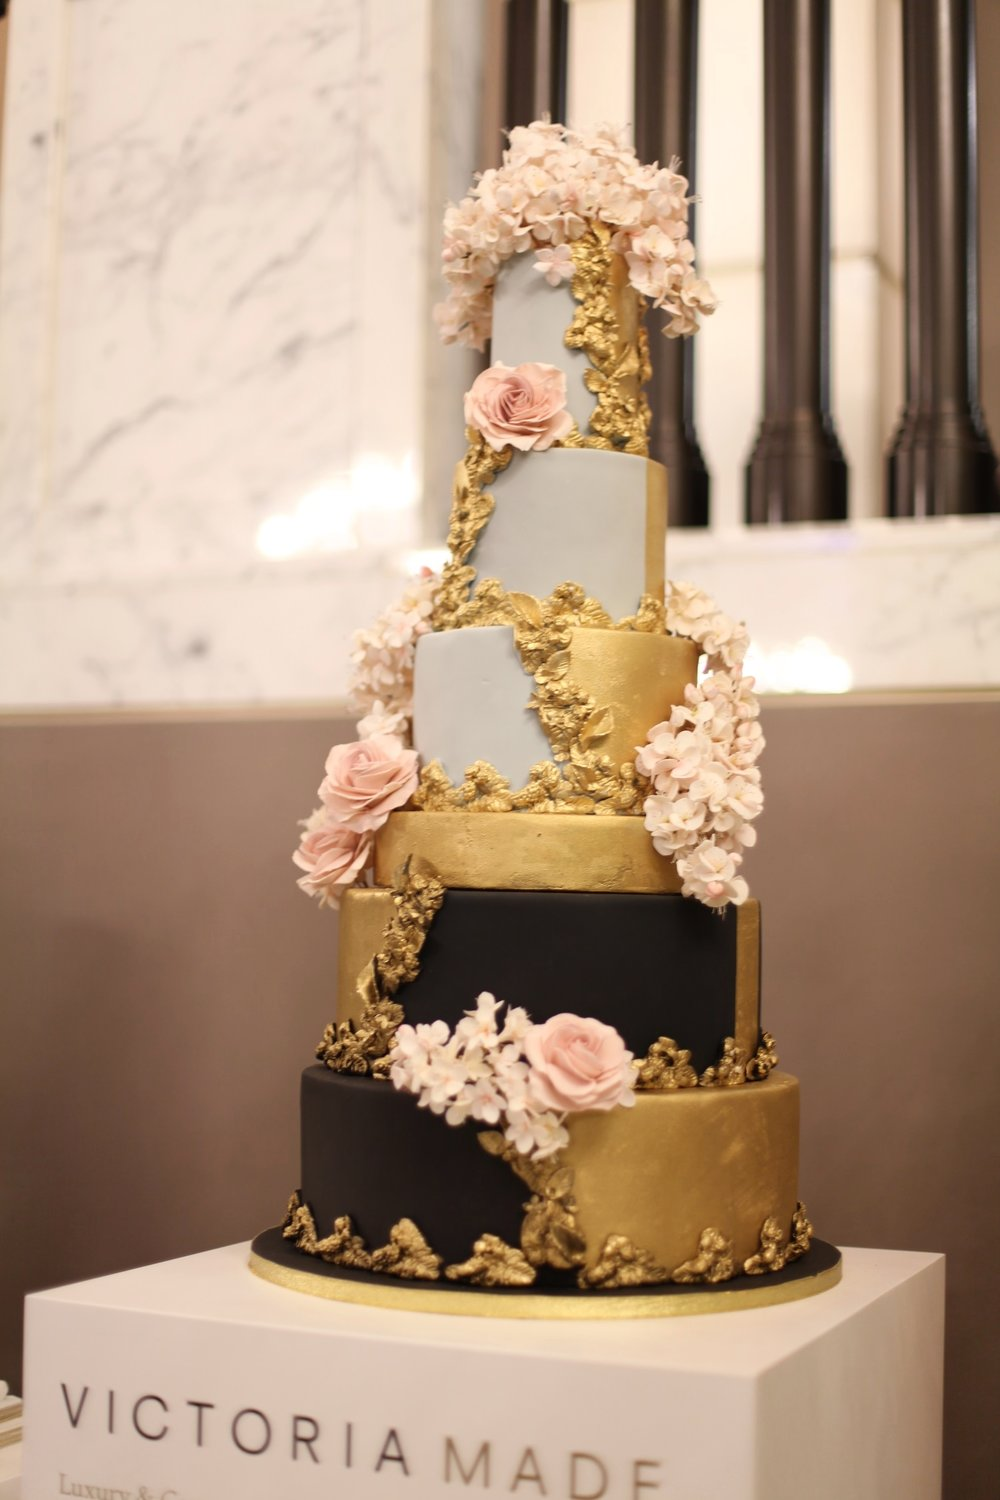 Victoria Made Wedding Cake (27) - Copy.jpg